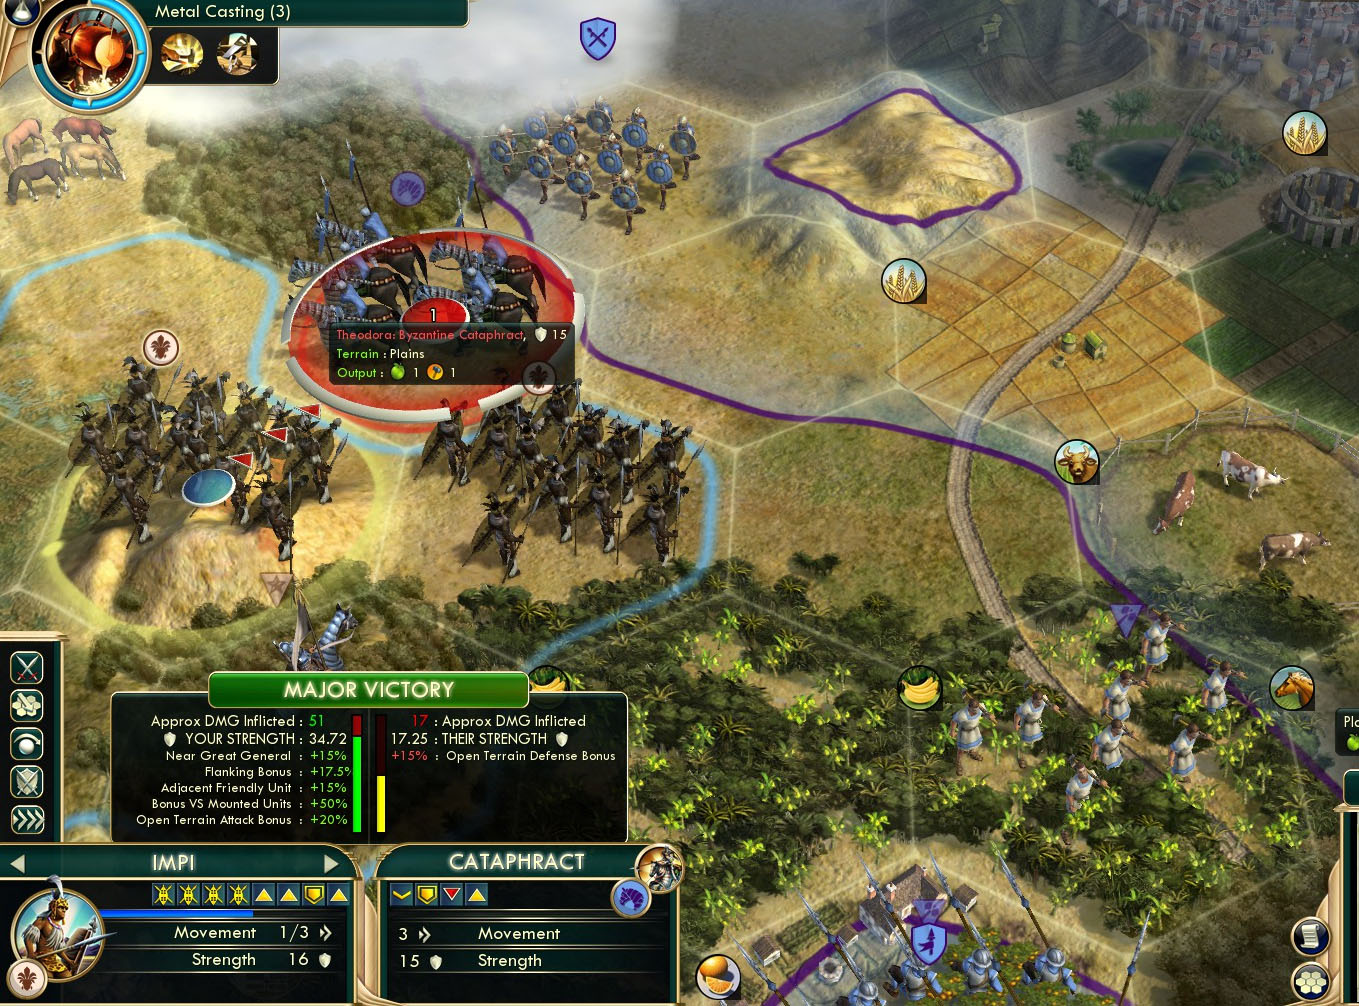 civilization v zulu impi spear throw not included in combat odds